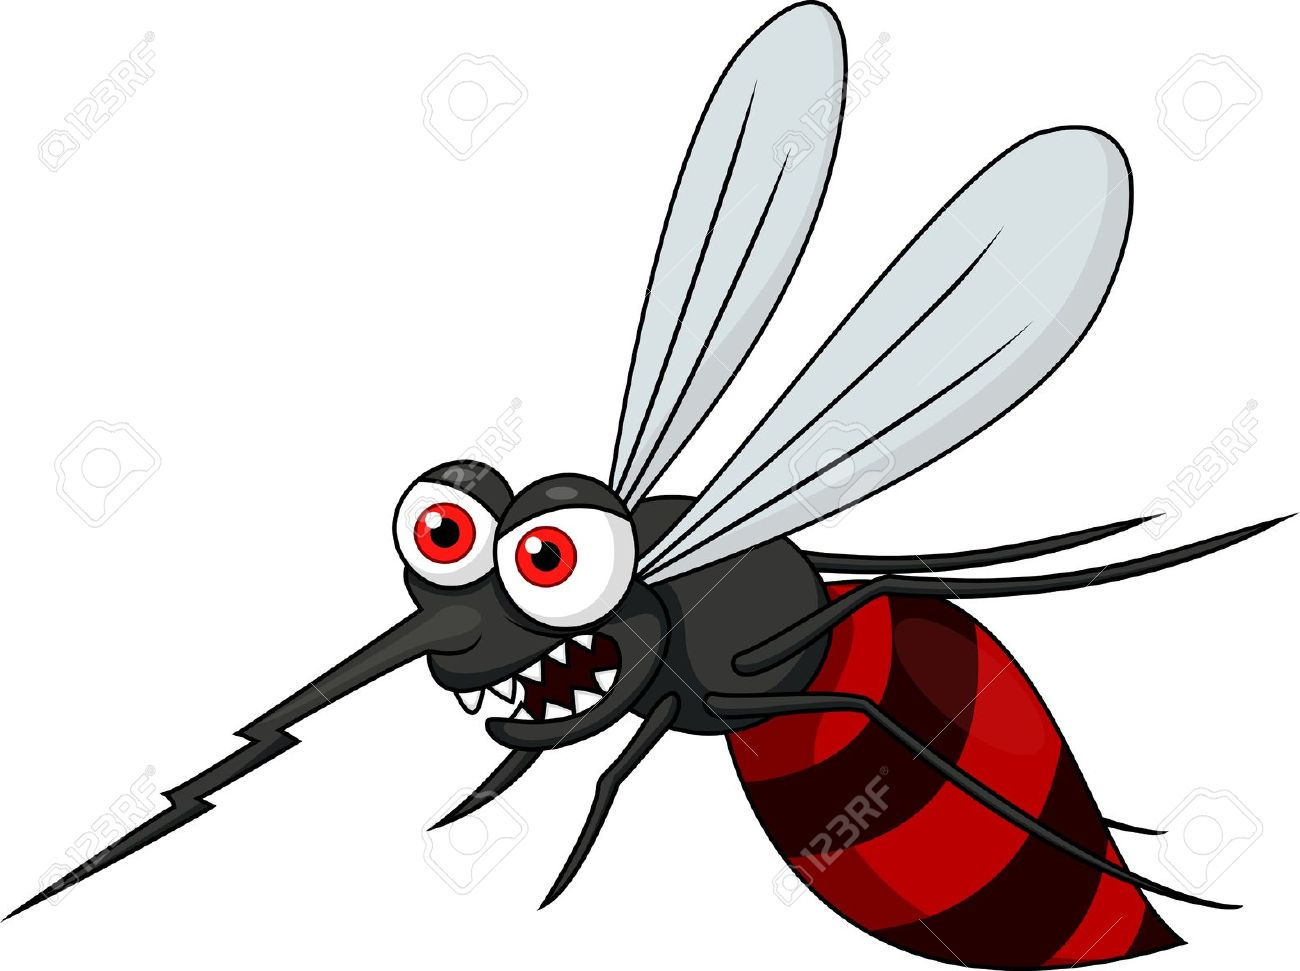 Free mosquito clipart image transparent library Best Mosquito Clipart #2796 - Clipartion.com image transparent library